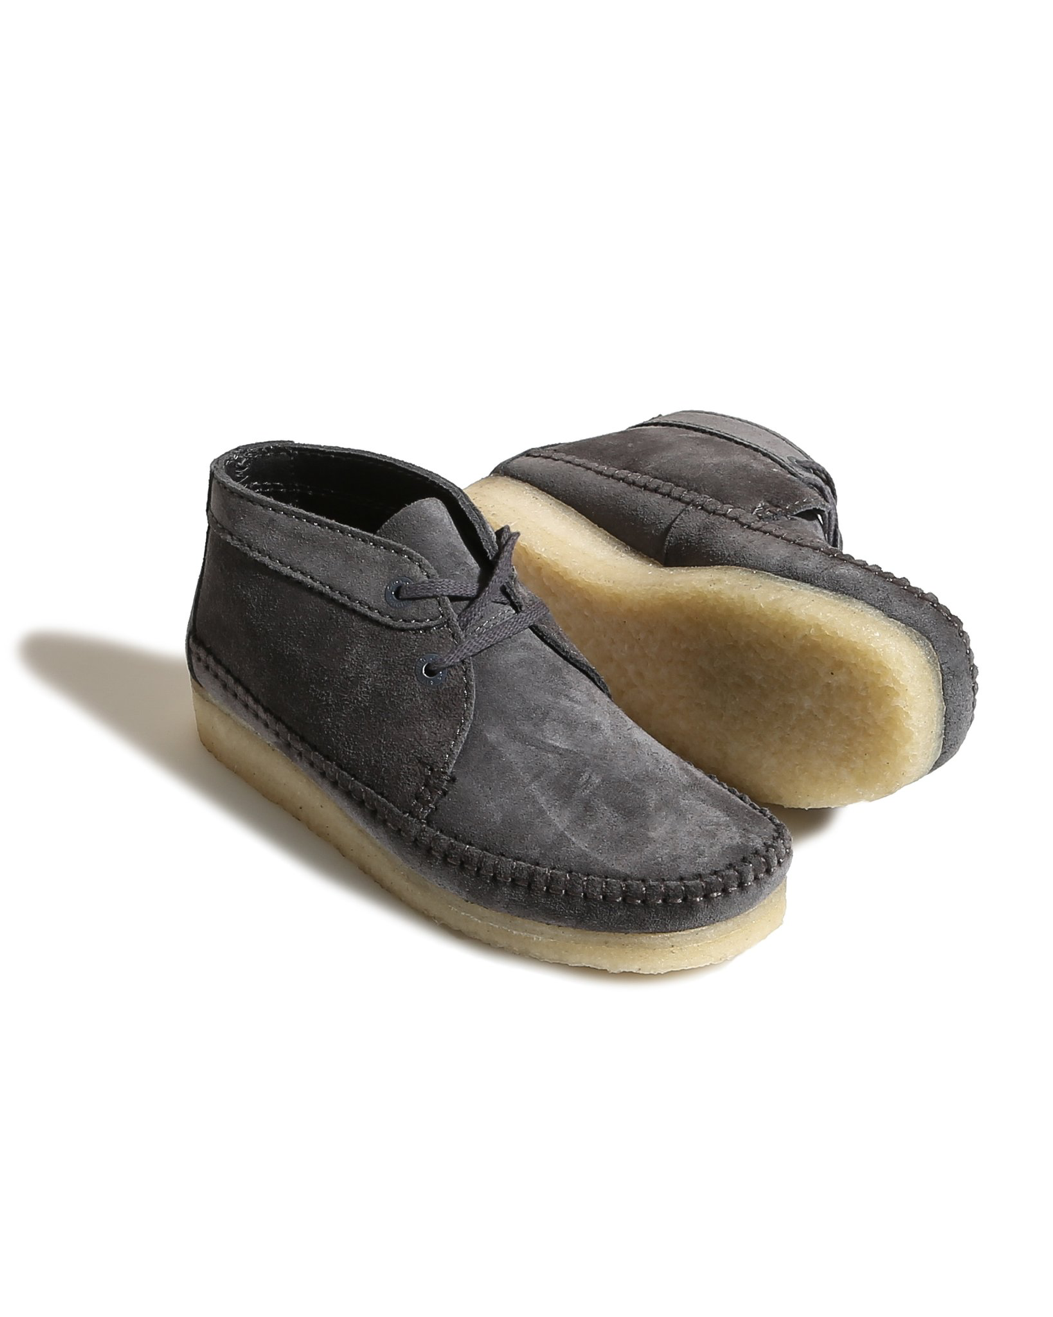 the Clarks Weaver Boot: collectionscl